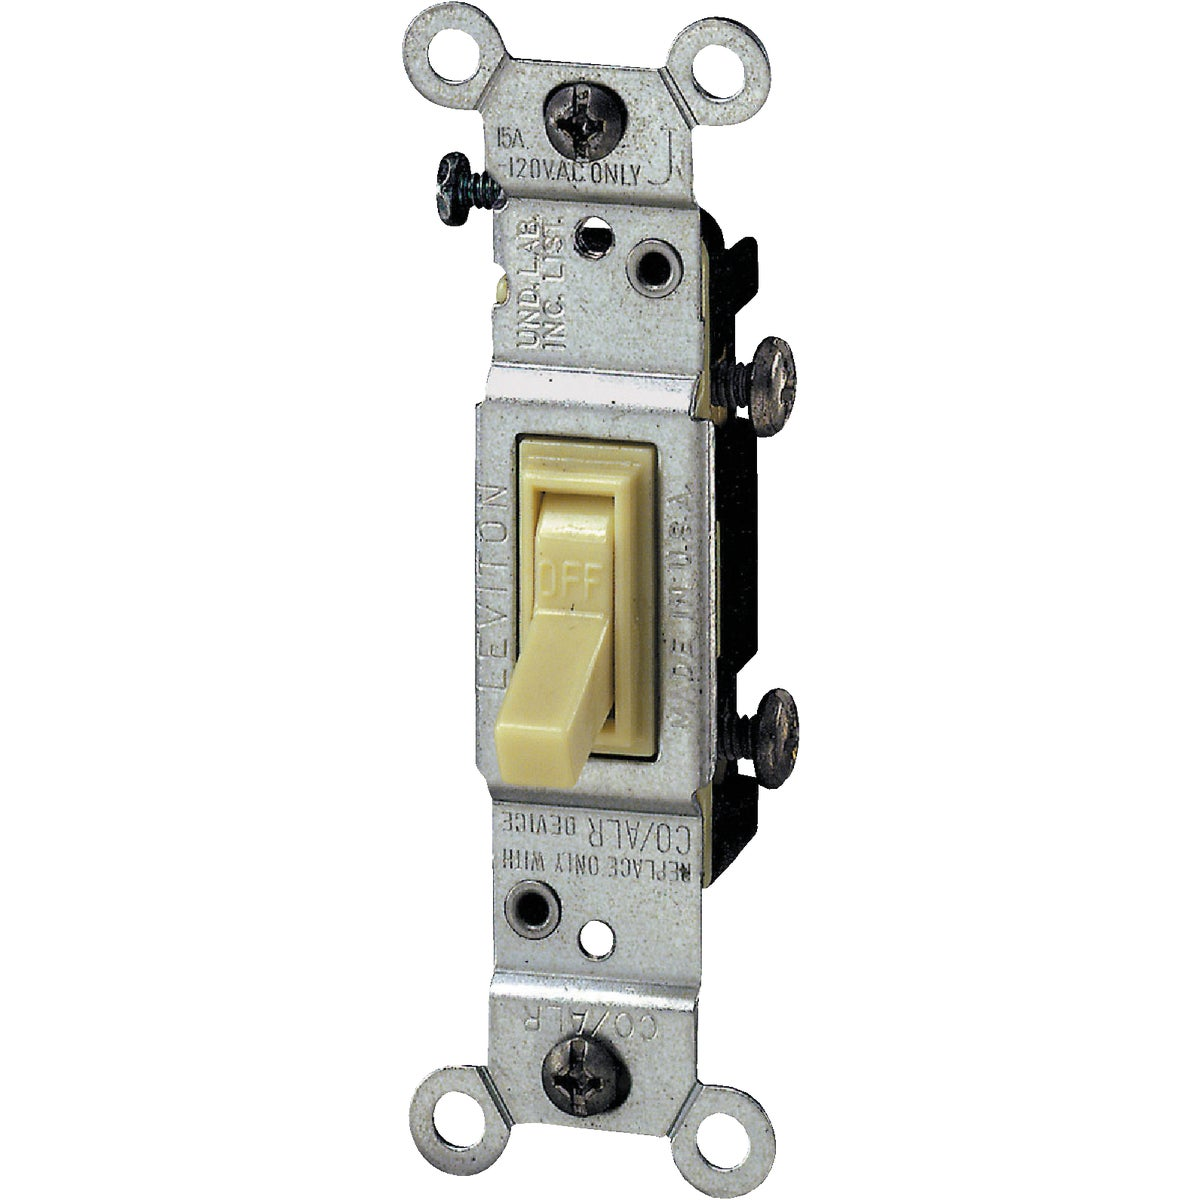 SGL POLE GRND SWITCH - S01-01451-2IS by Leviton Mfg Co